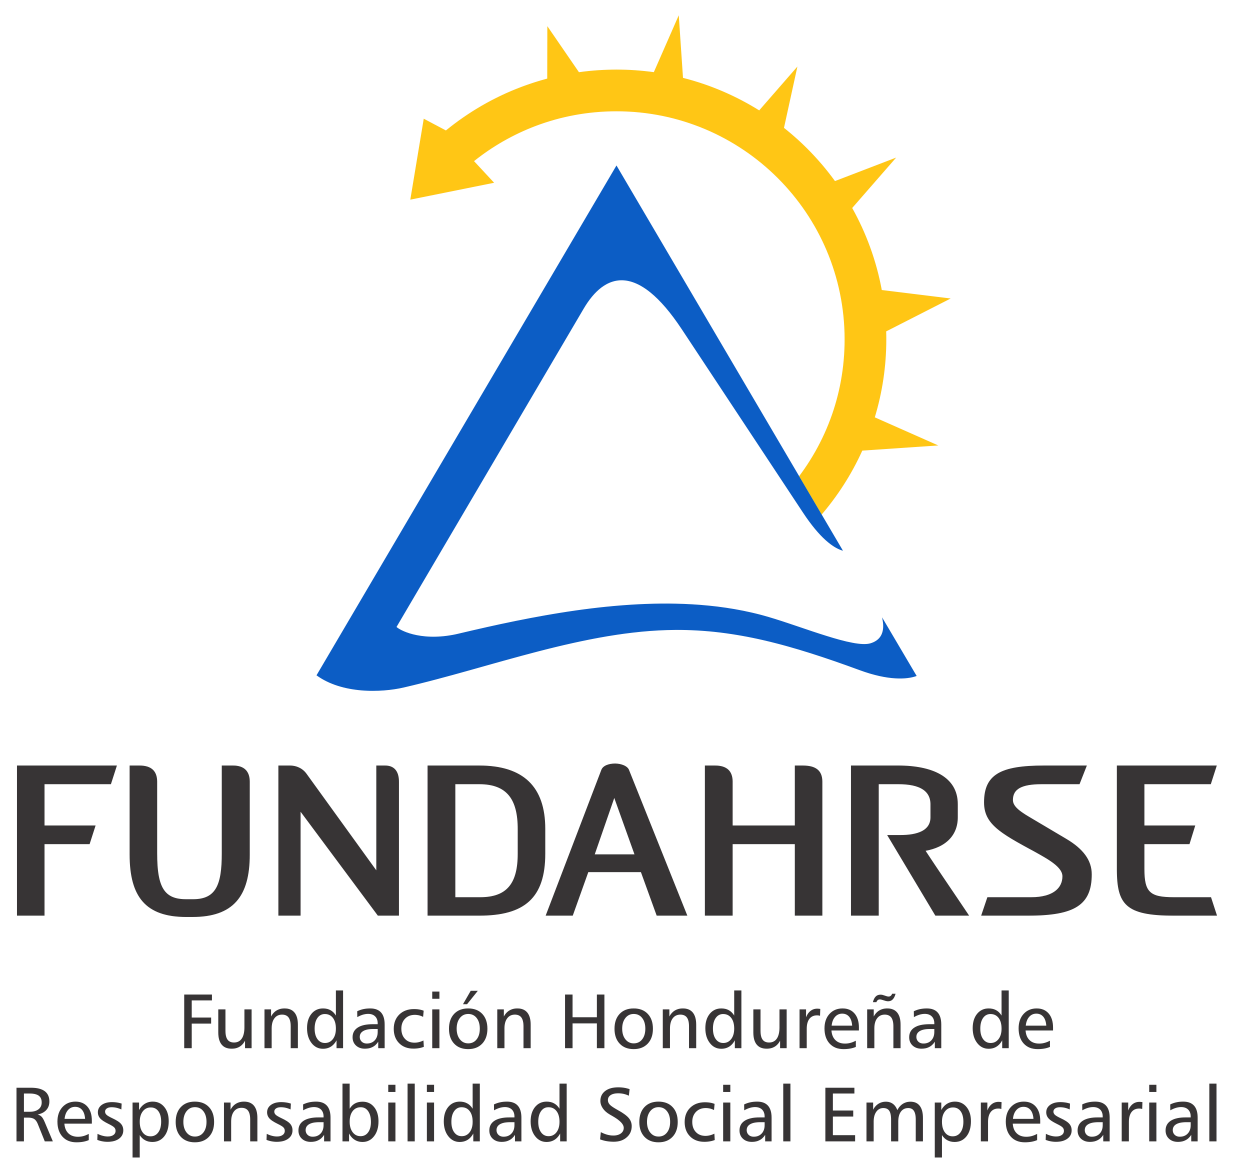 FUNDAHRSE RGB copia 2